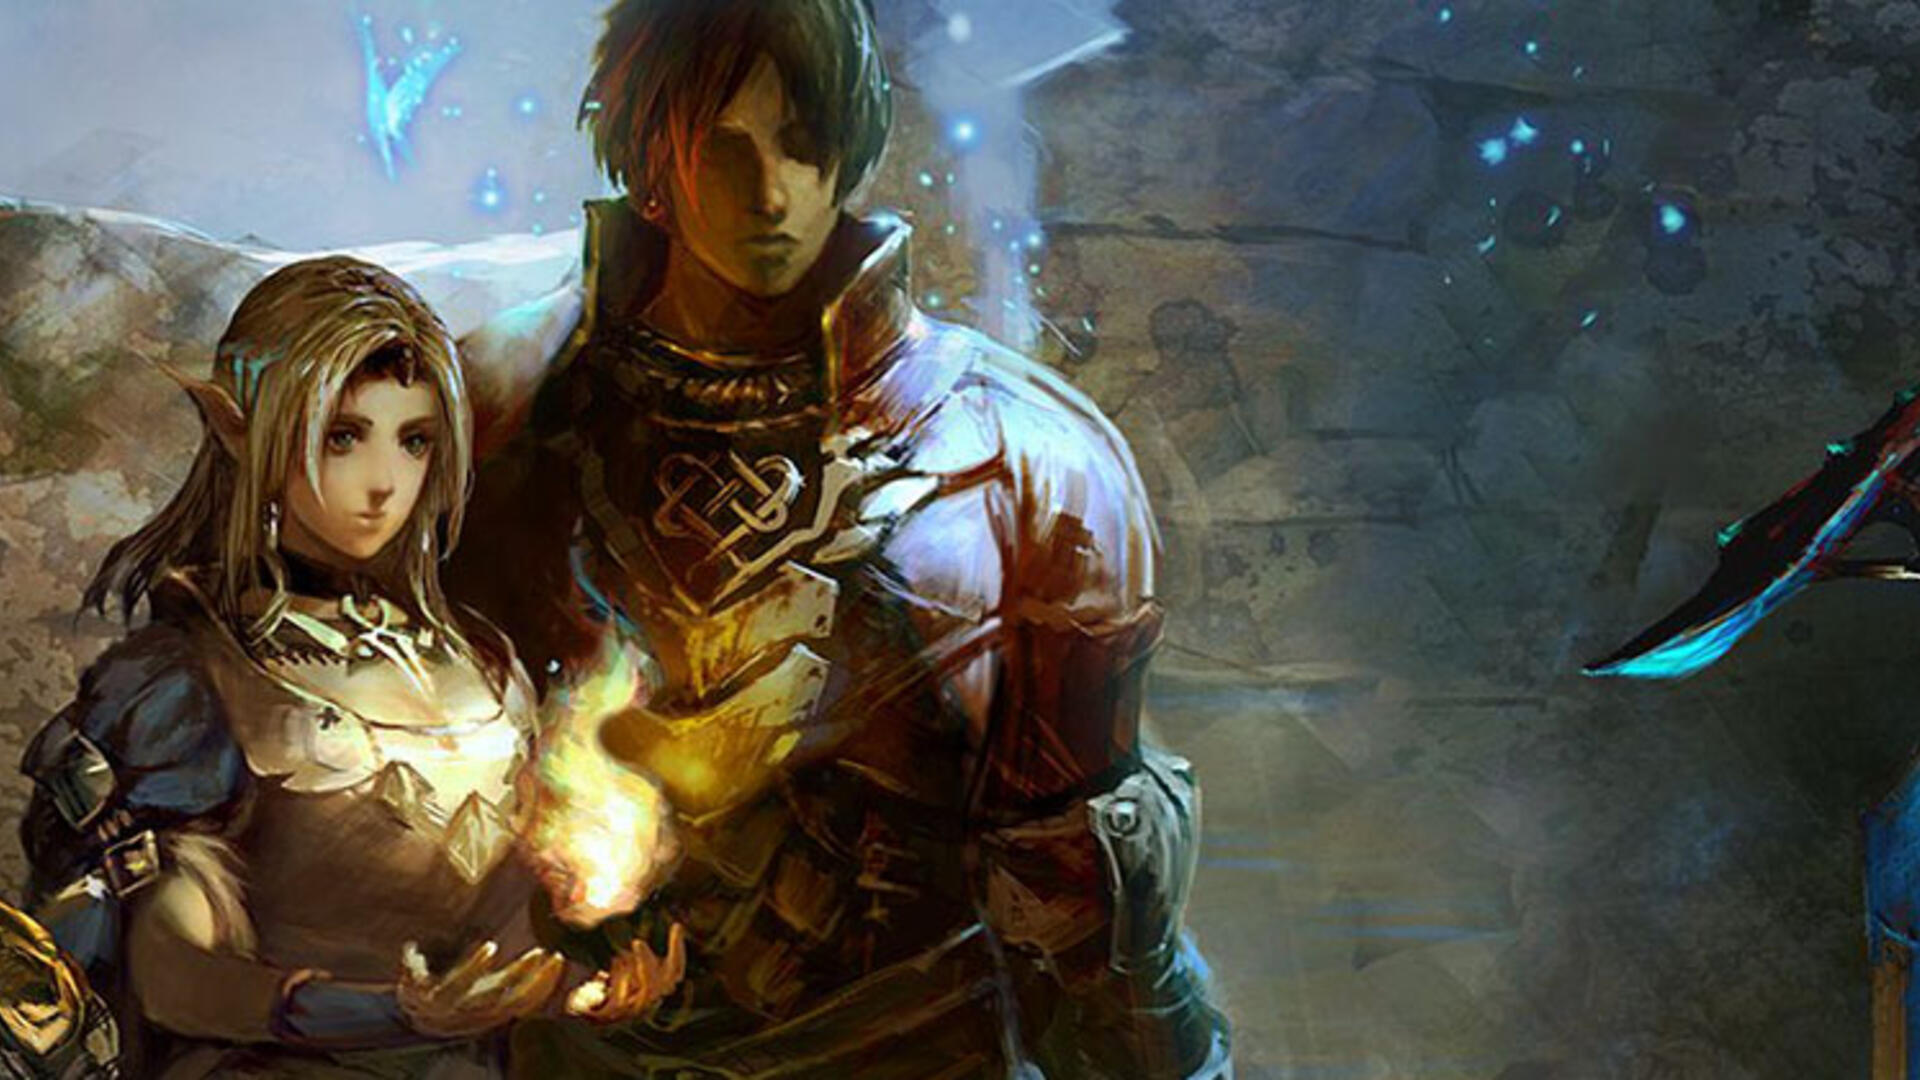 Stranger of Sword City Turns Out to be More Familiar Than Its Name Suggests